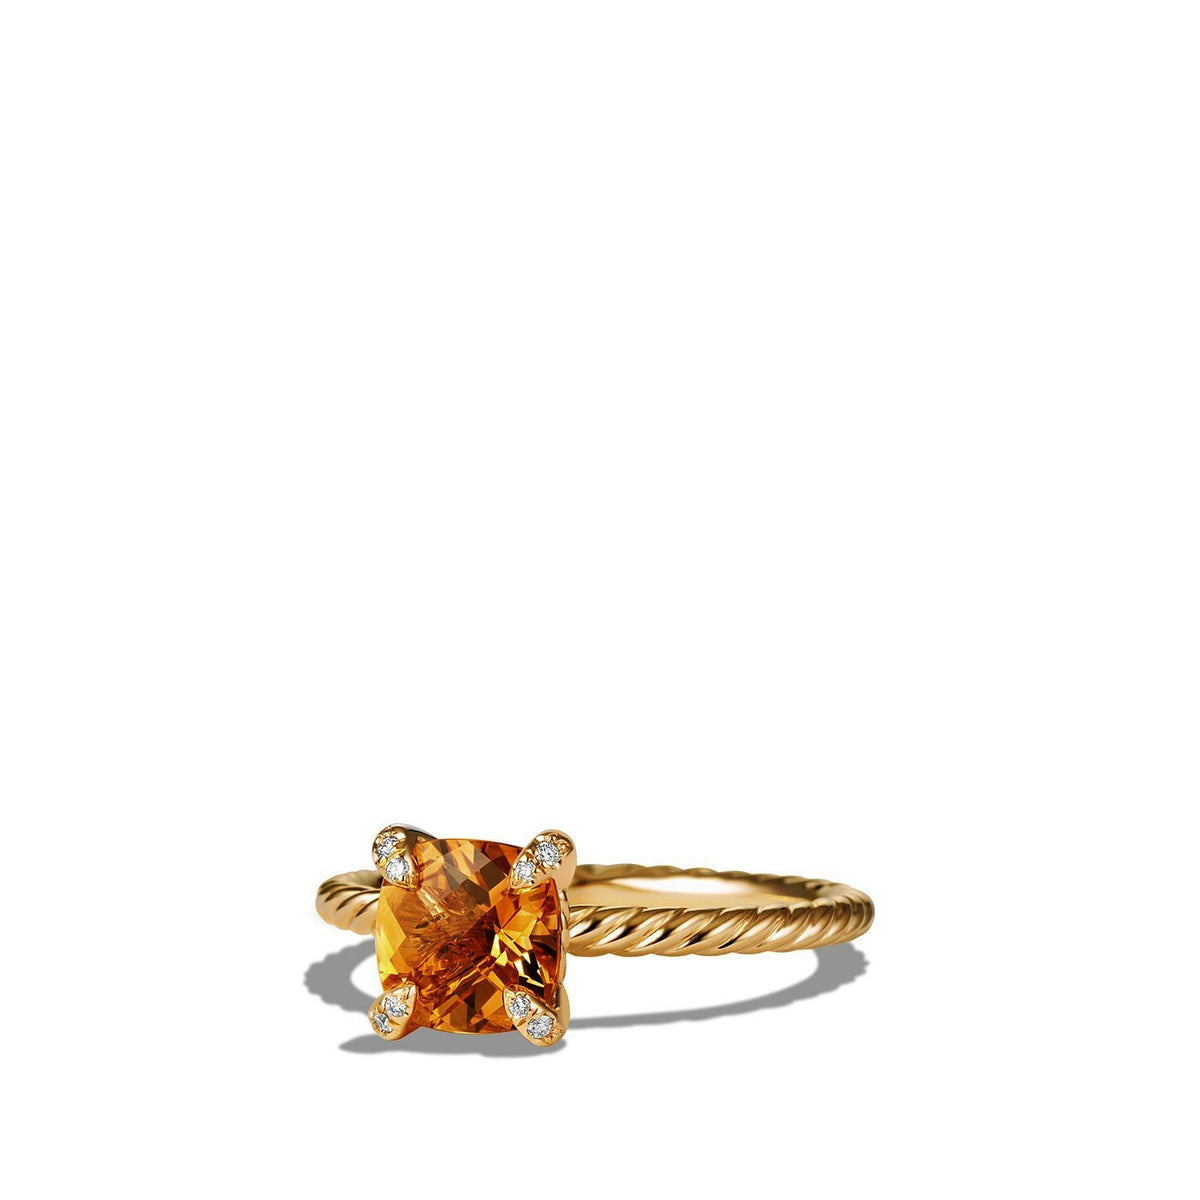 Ring with Citrine and Diamonds in 18K Gold